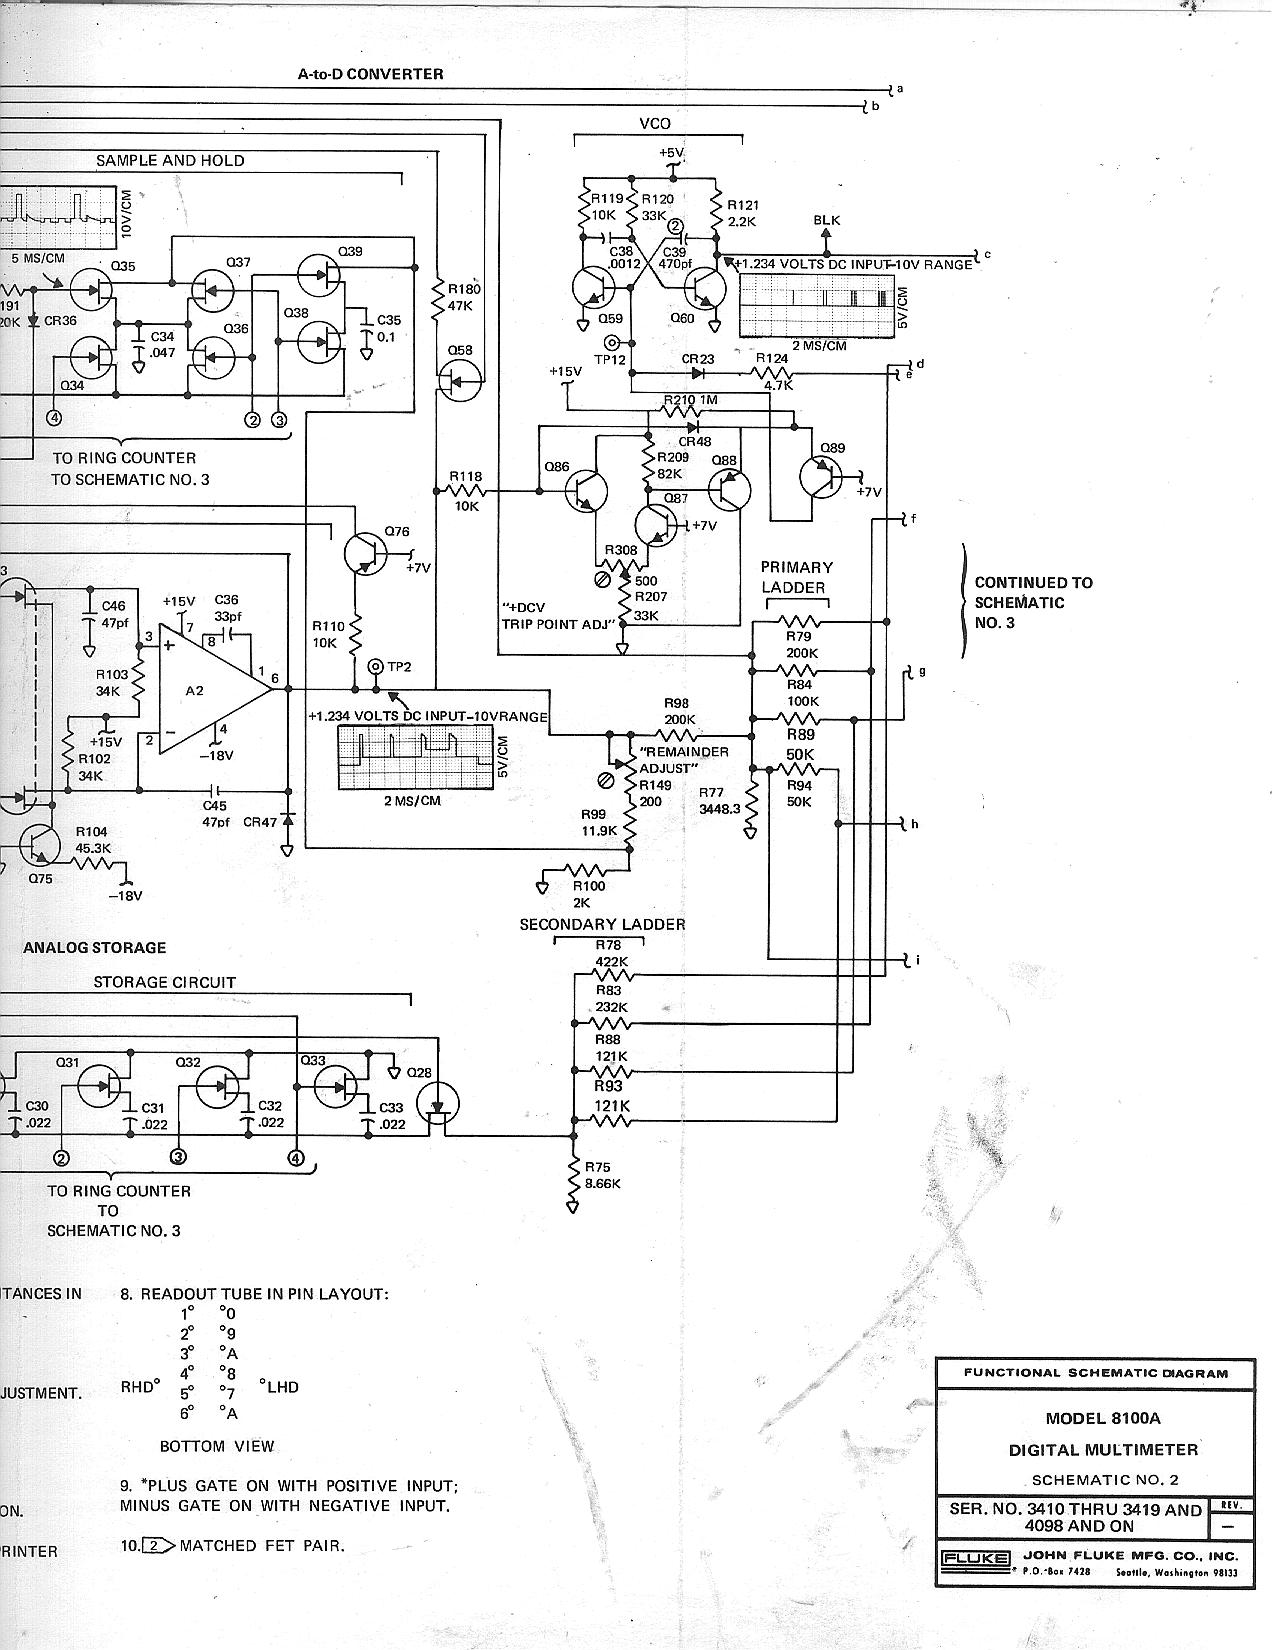 Fluke 8100A and 8100B schematics and manual